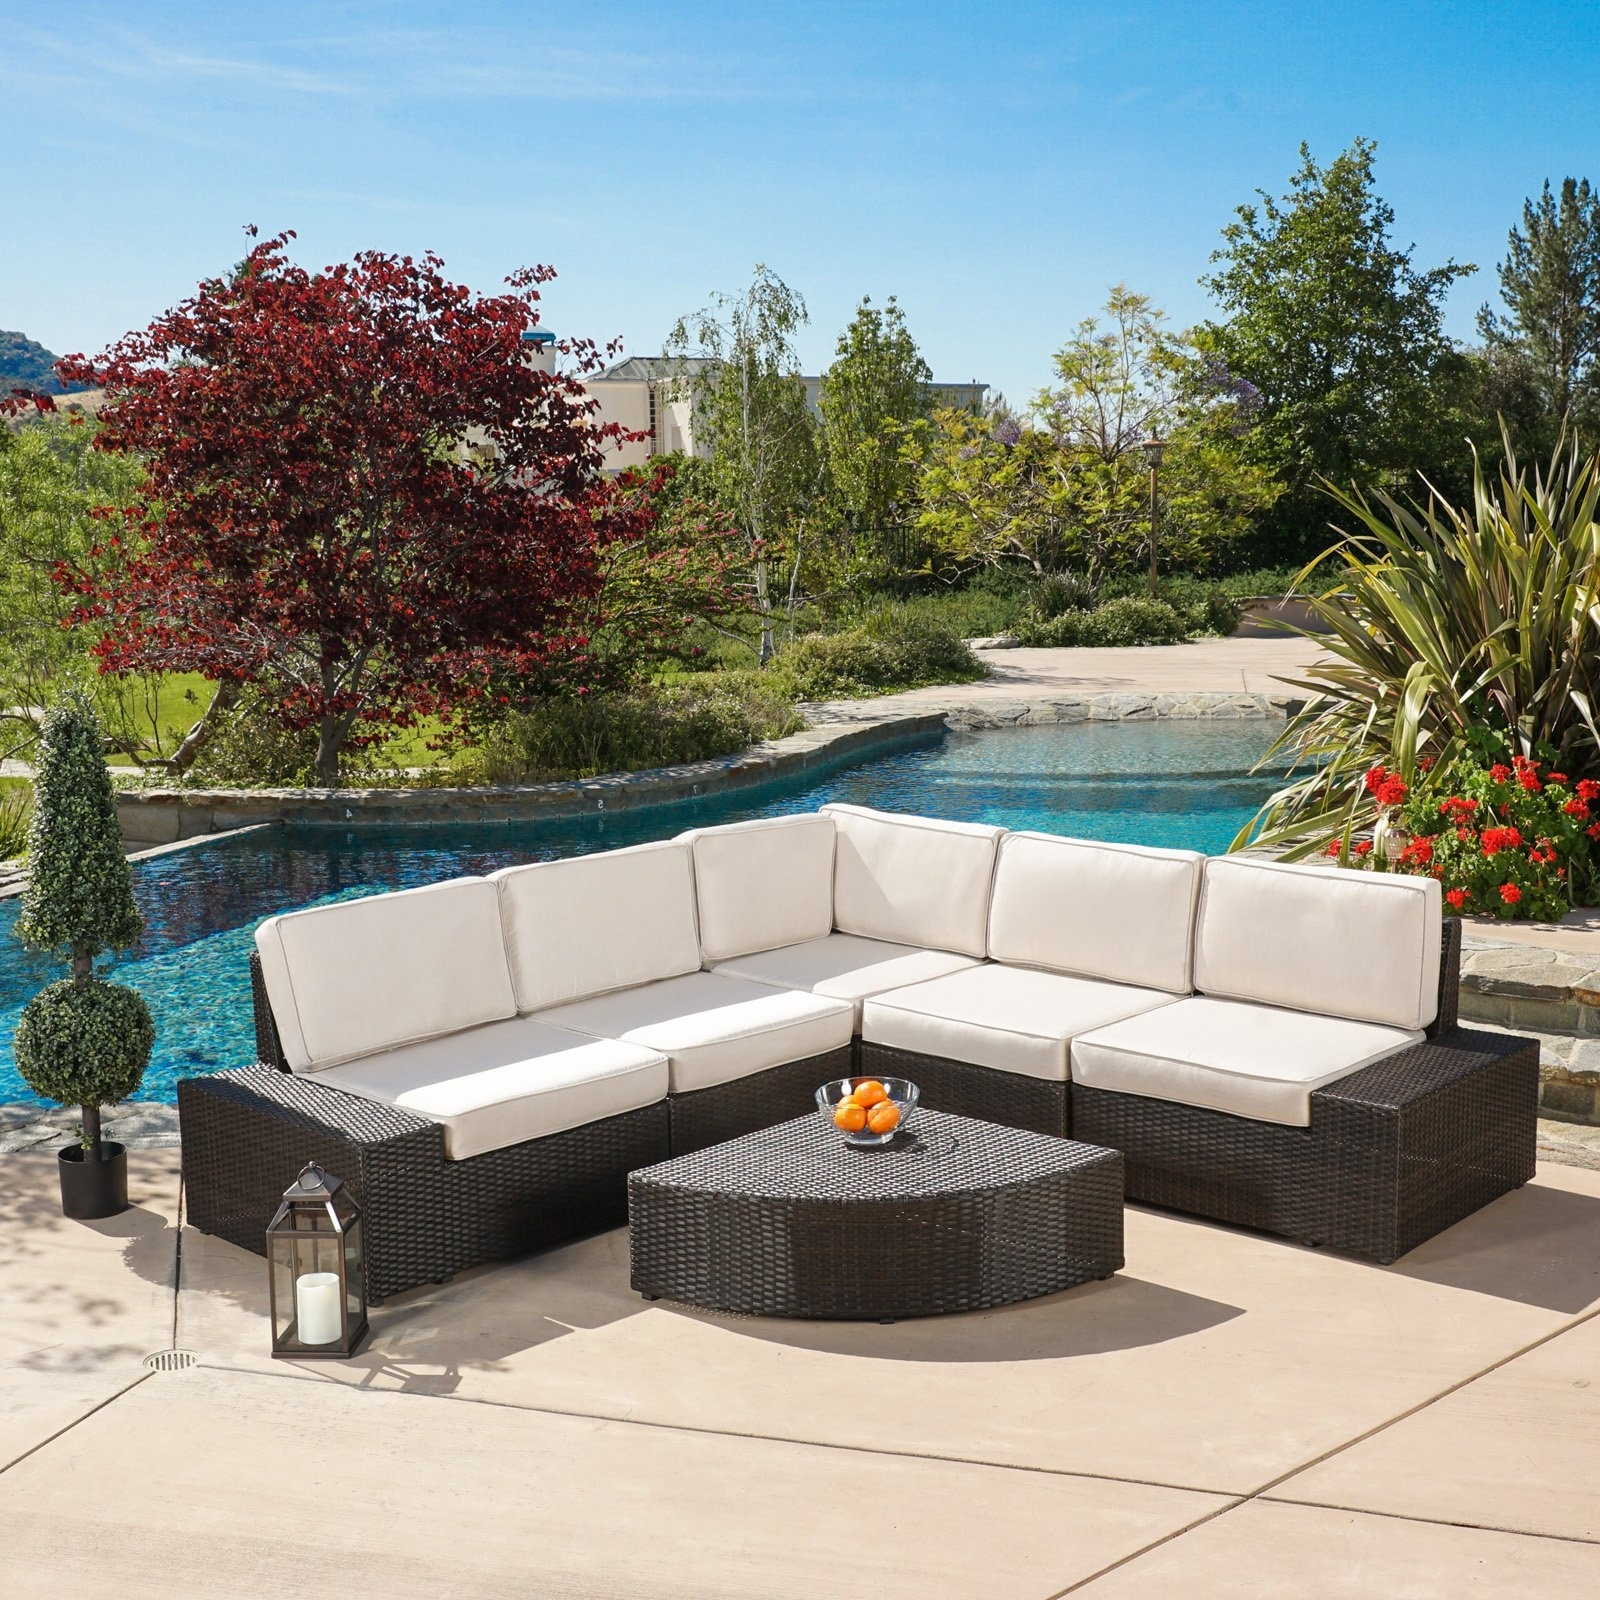 Zora Outdoor 6 Piece Sofa Conversation Set – Walmart Throughout Widely Used Patio Conversation Sets With Sunbrella Cushions (View 15 of 15)